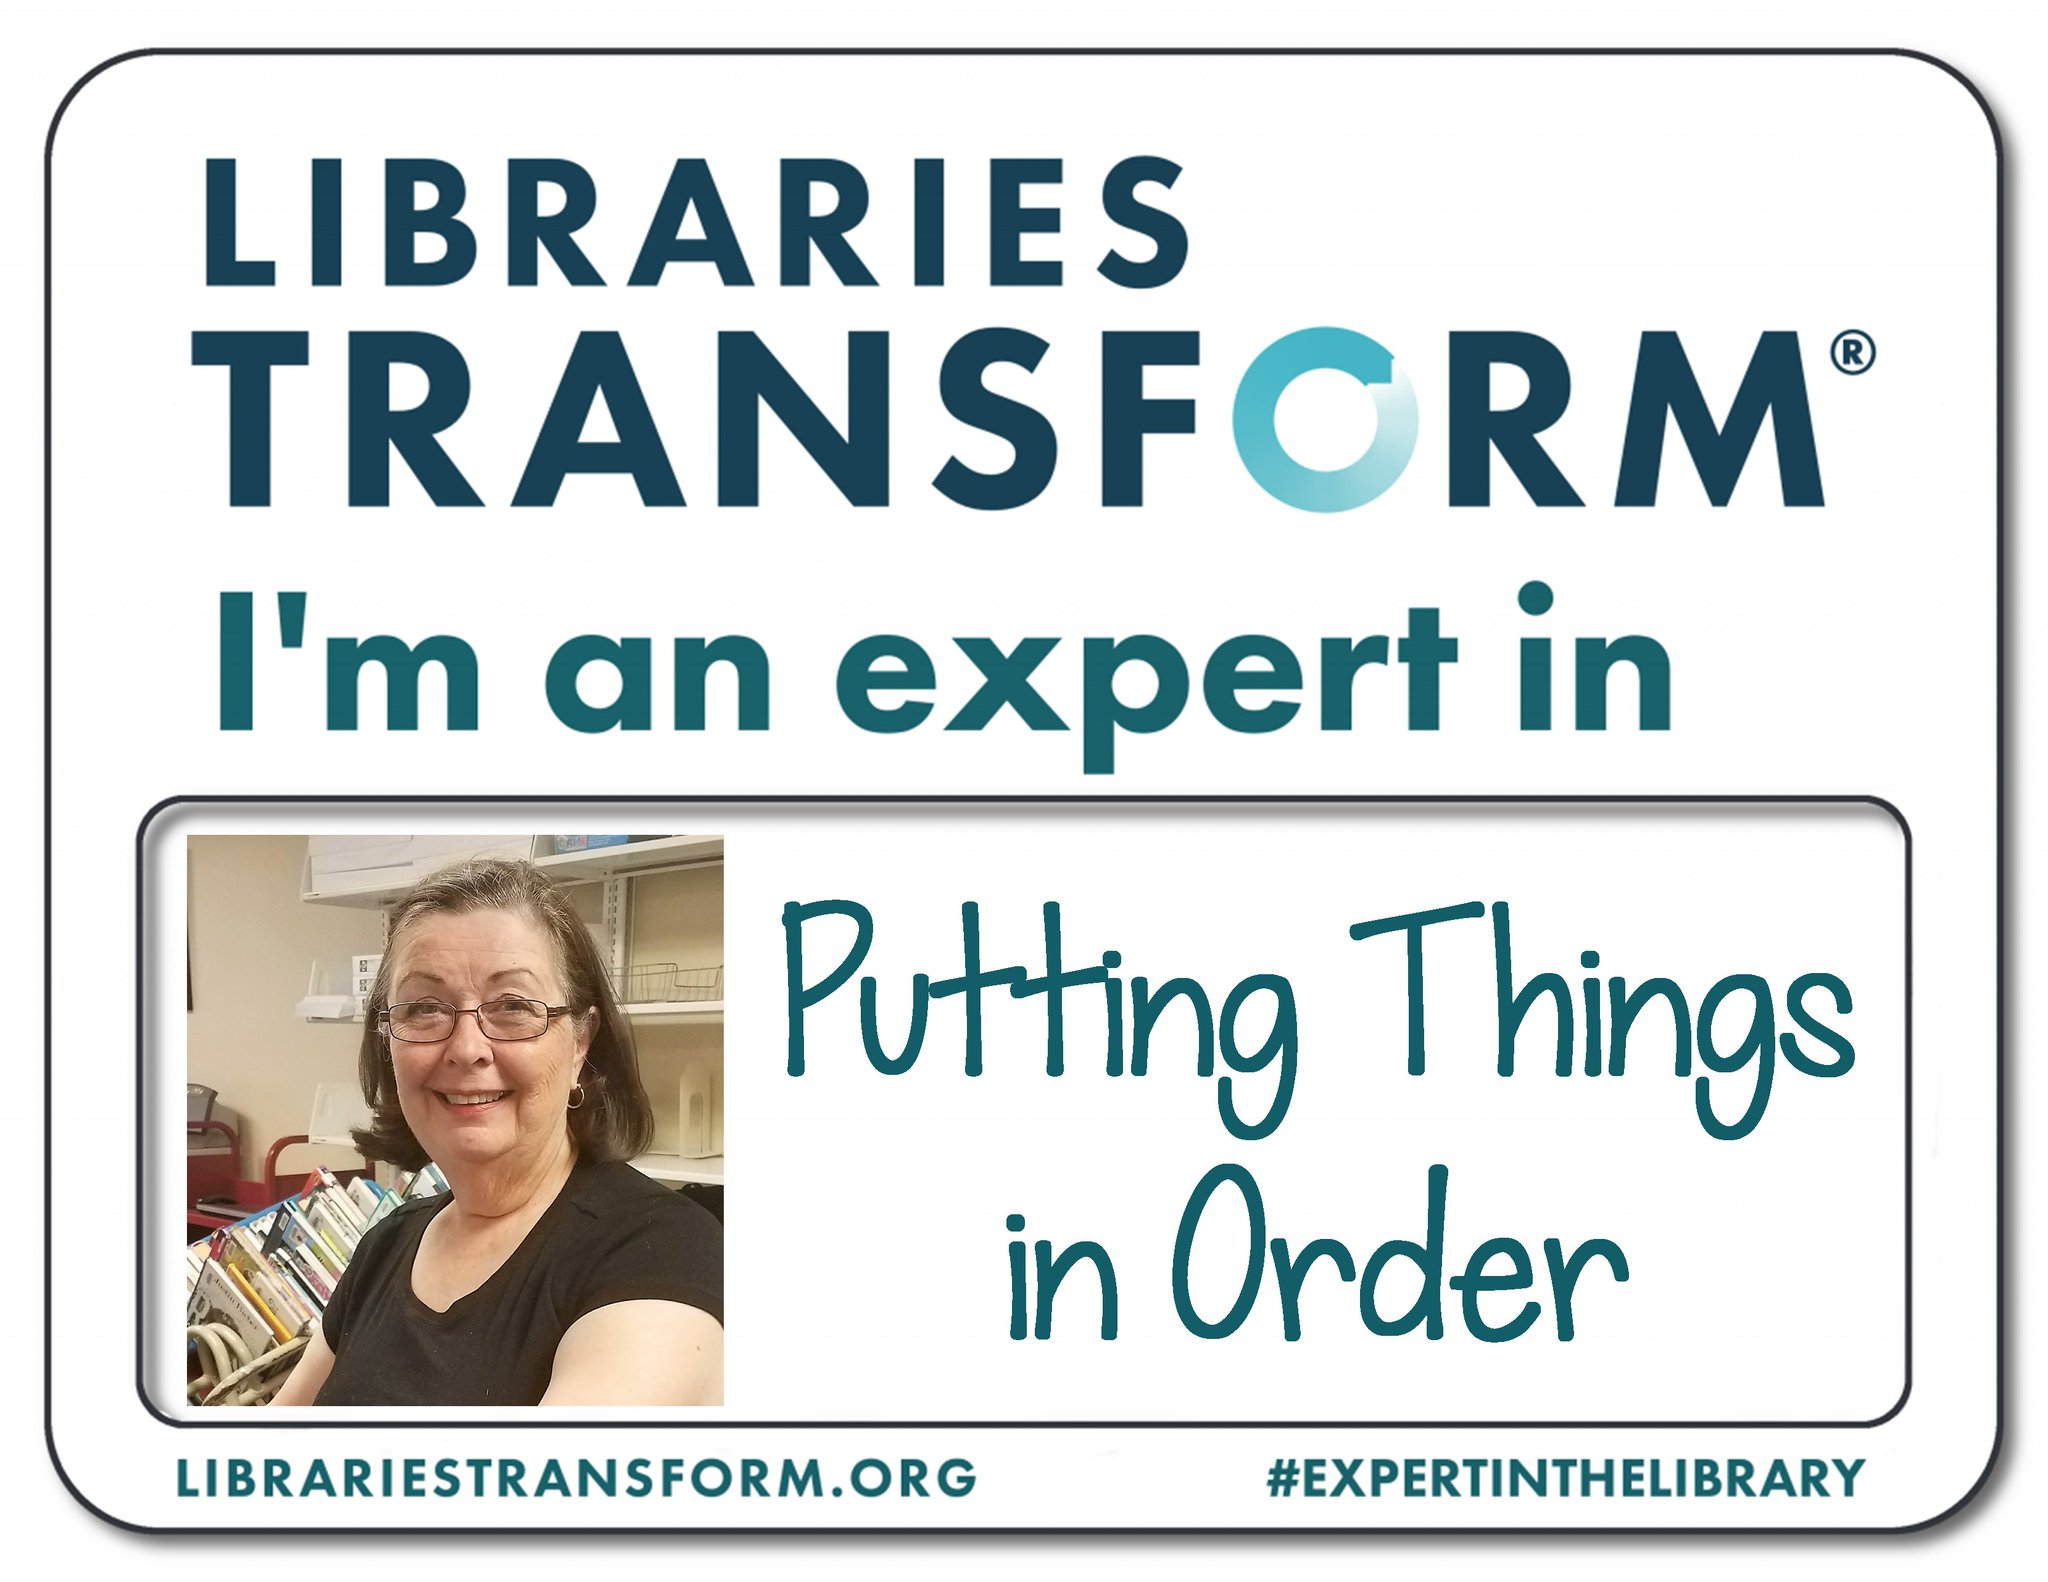 Celebrate #NationalLibraryWeek with us! Meet Kate, an #ExpertInTheLibrary at KPL. https://t.co/Twj3Pmu0oH